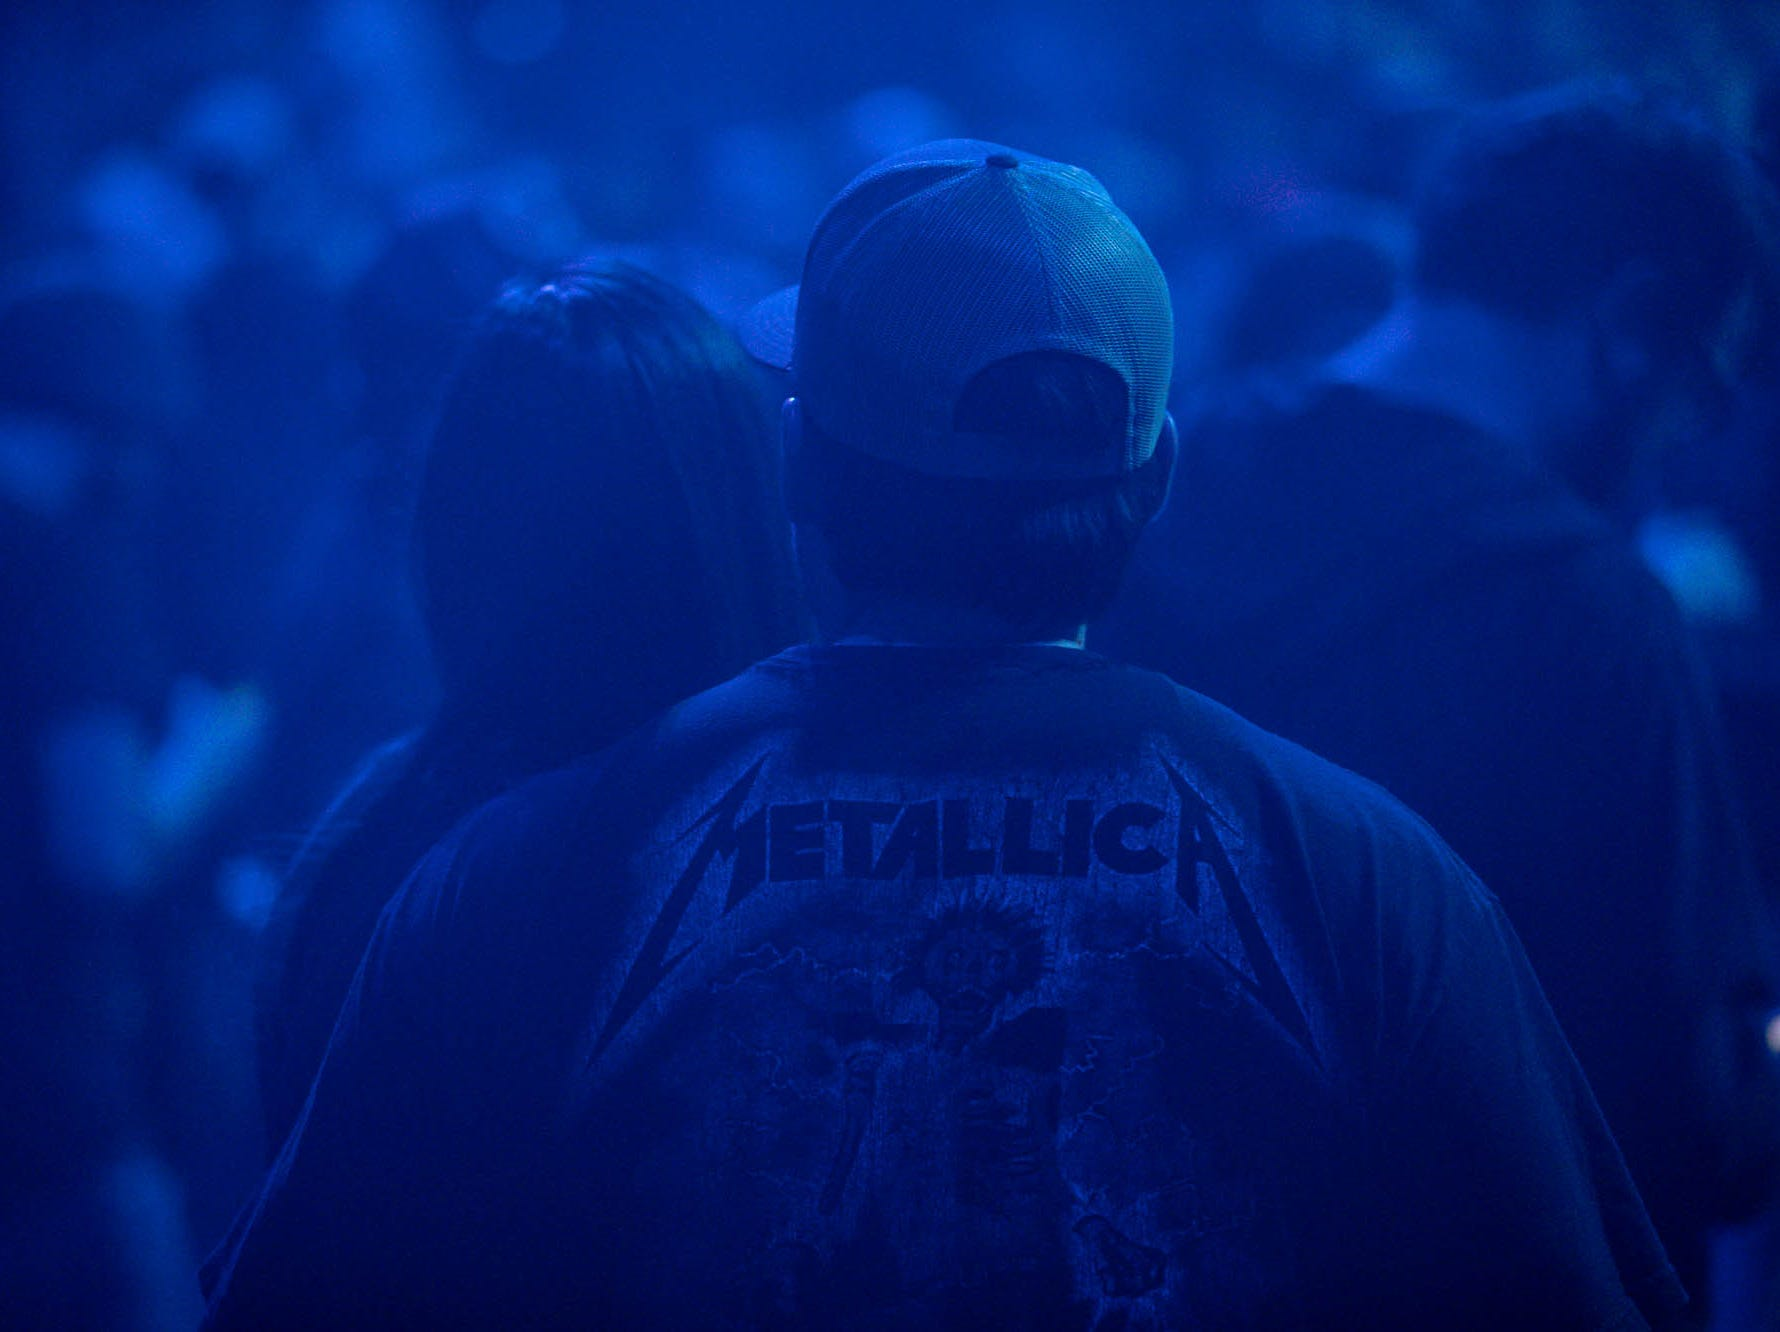 Metallica fans rock concert T's as the band brings their WorldWired Tour to Bankers Life Fieldhouse on Monday, March 11, 2019.